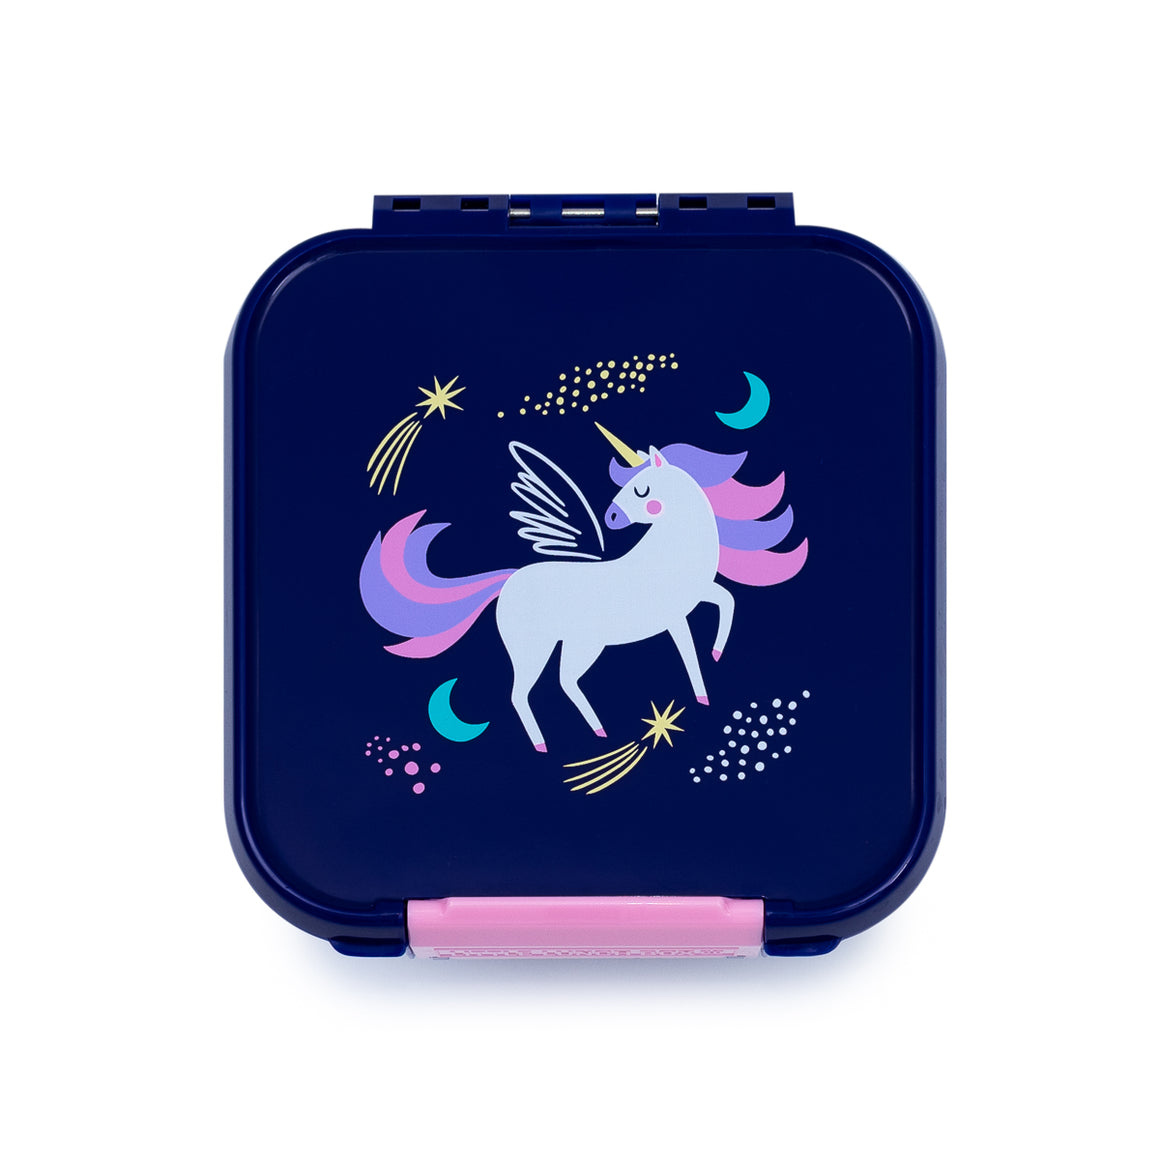 Little Lunch Box Co | Bento 2 - Magical Unicorn